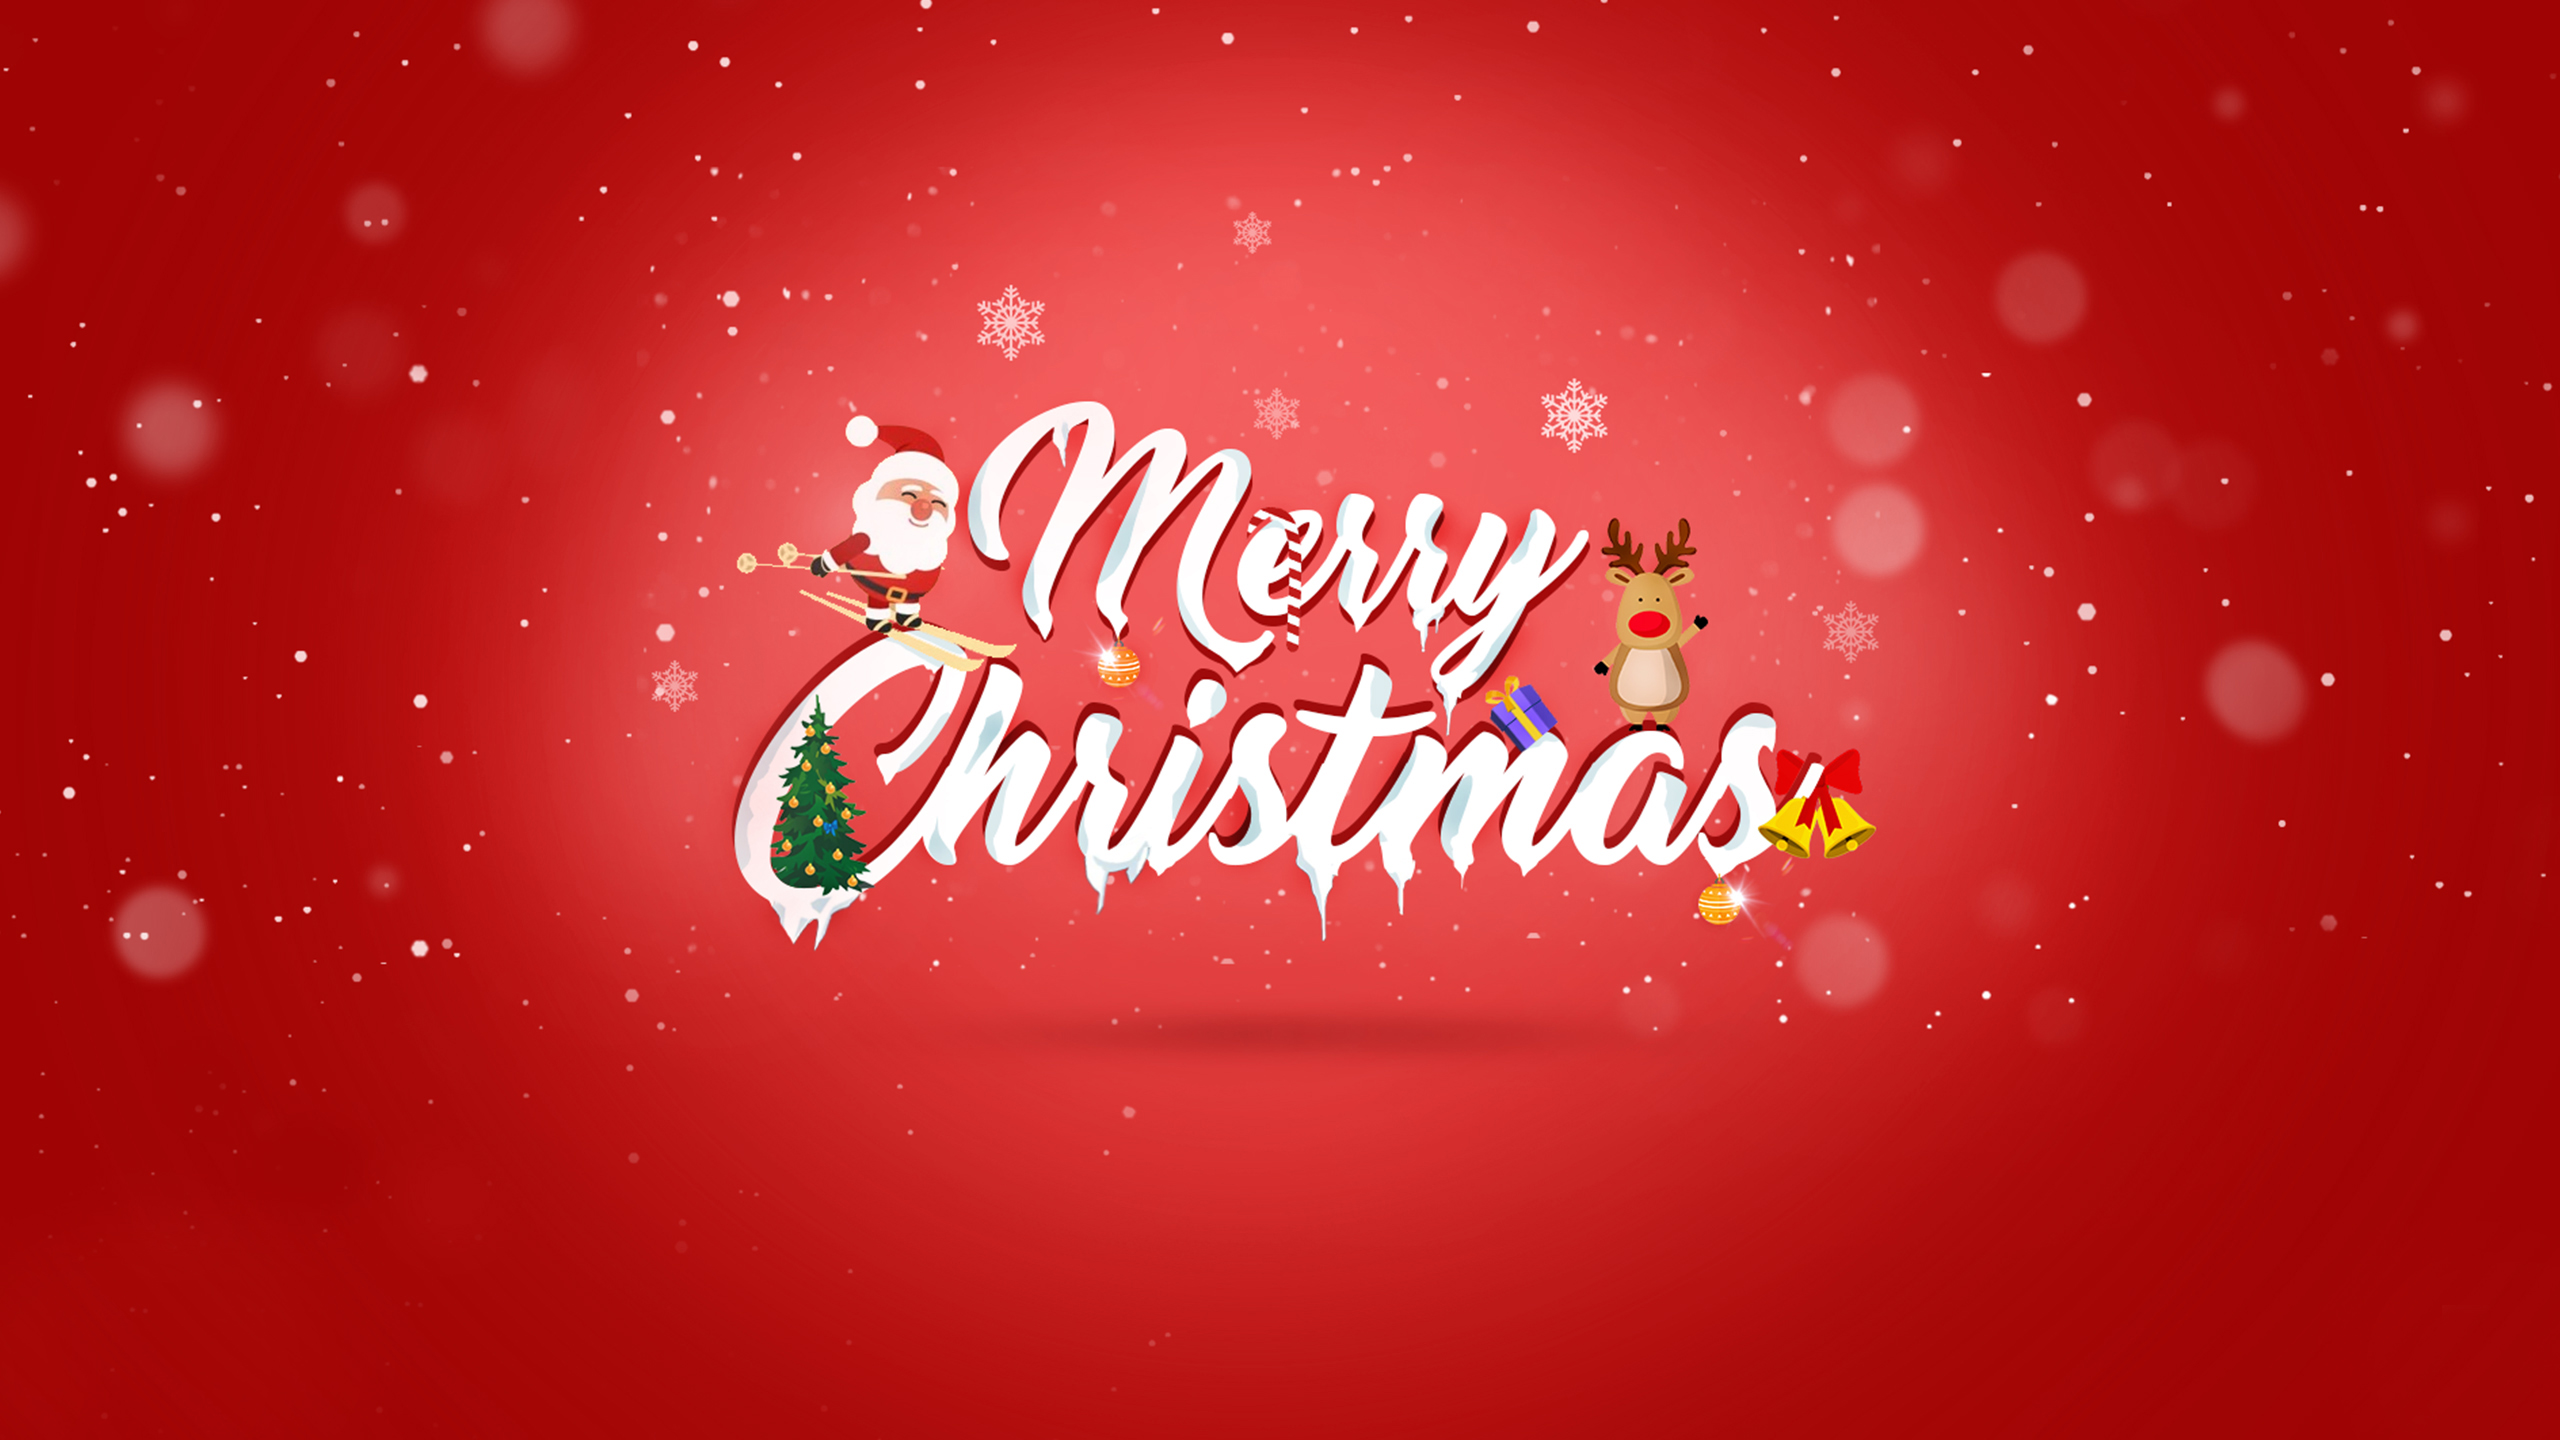 merry-christmas-hd-wallpapers-2019